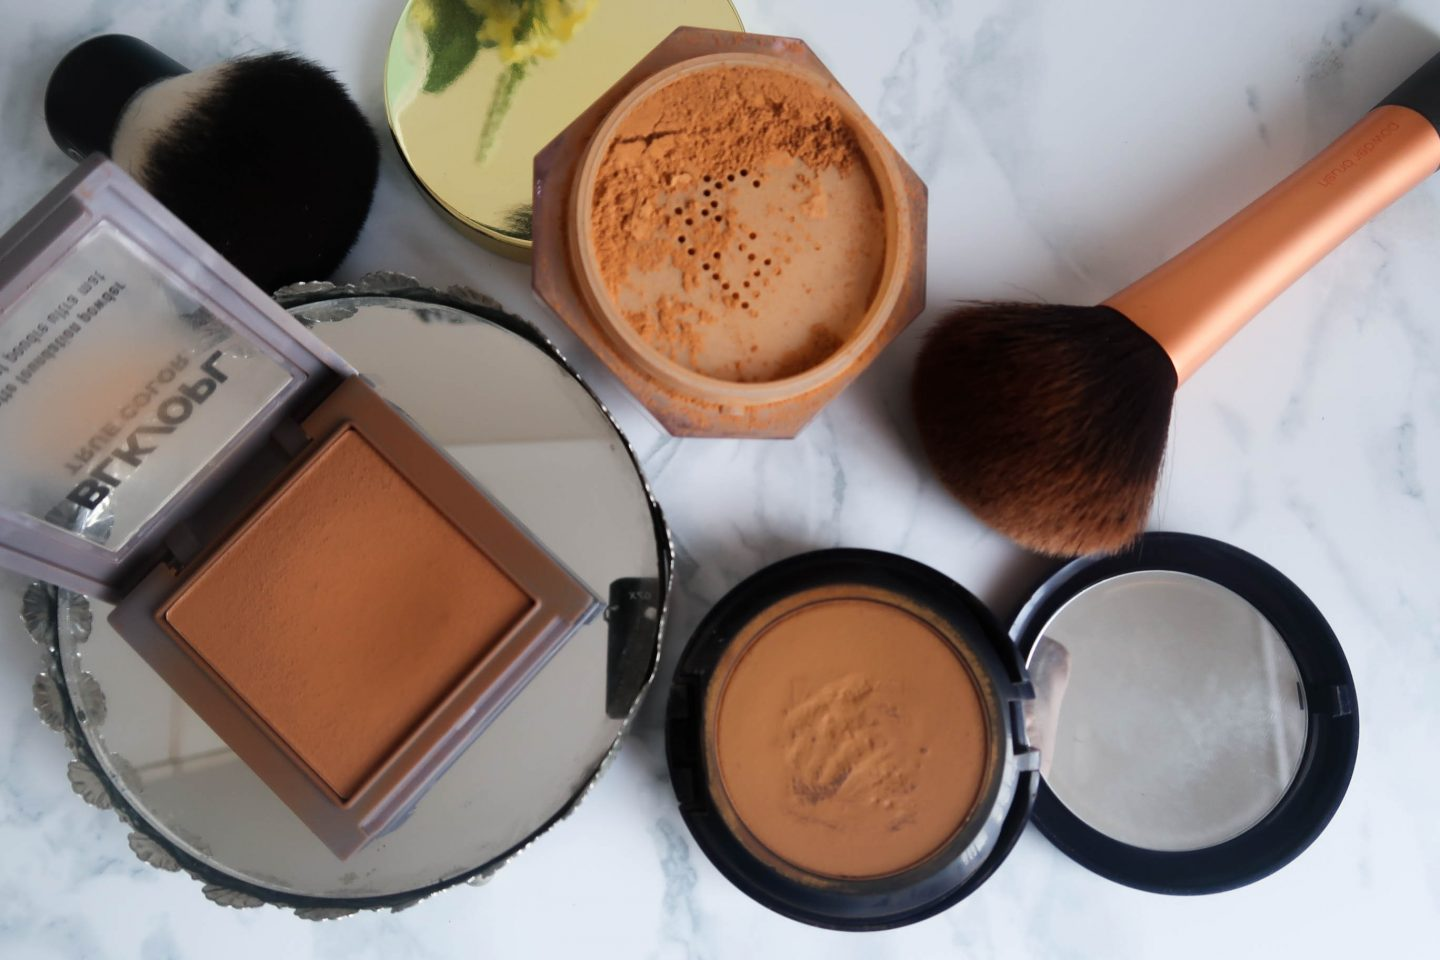 Setting powders for dark skin